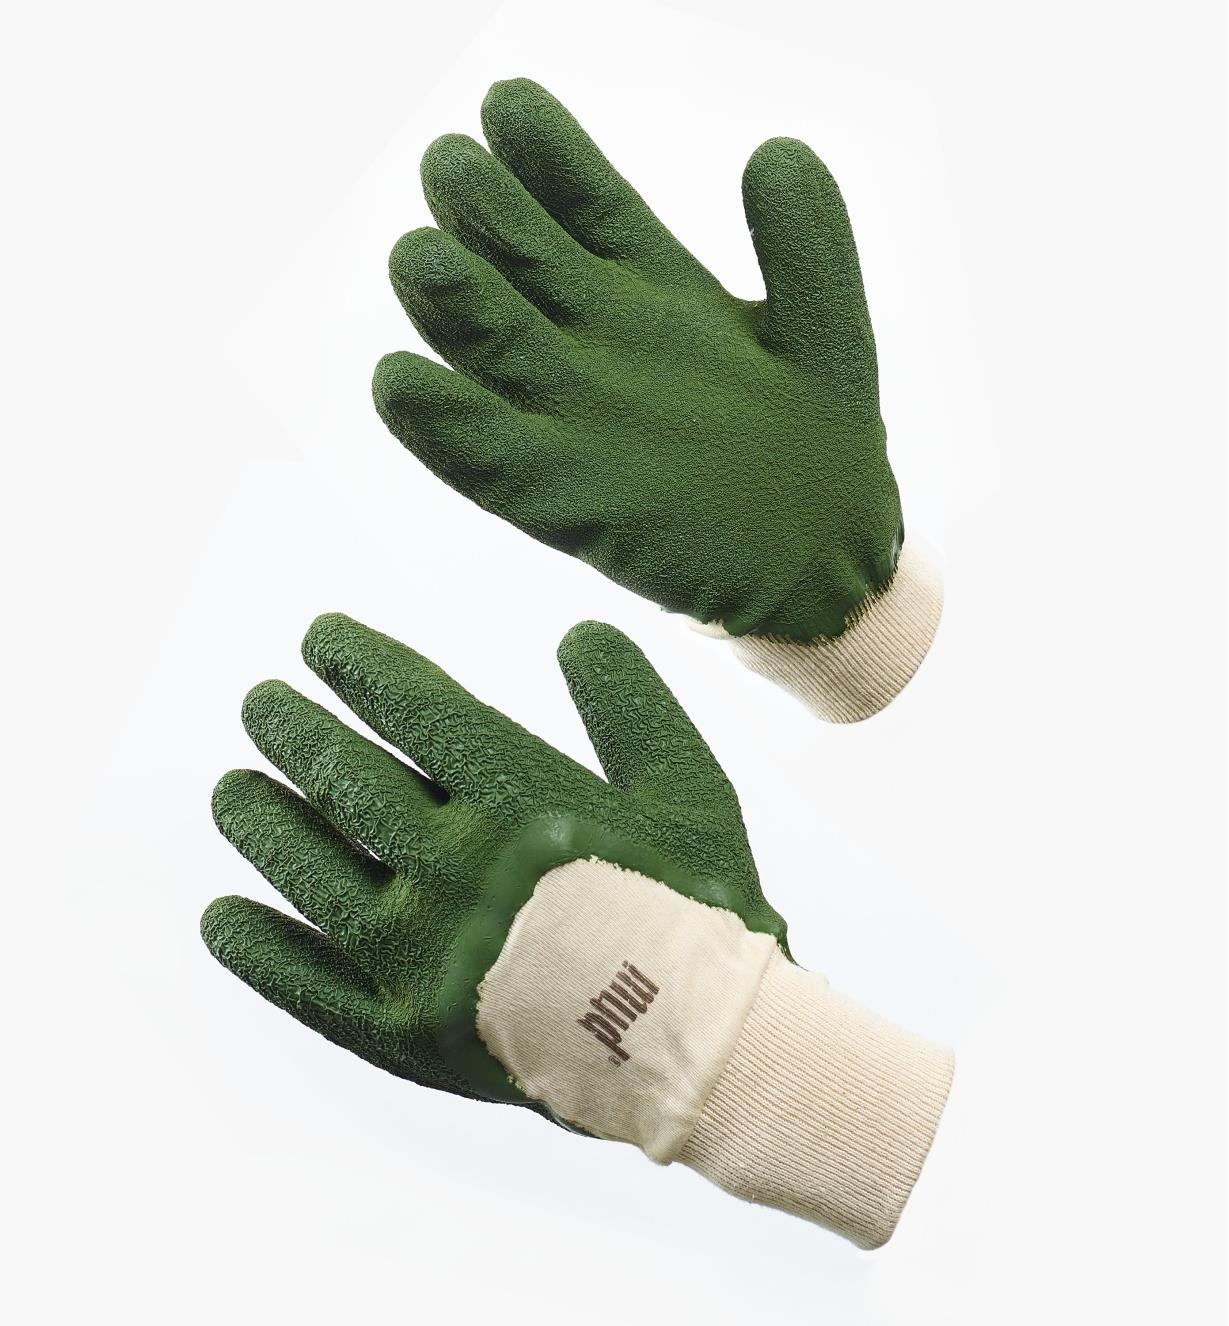 AH194 - Mud Gloves, XL (size 10)